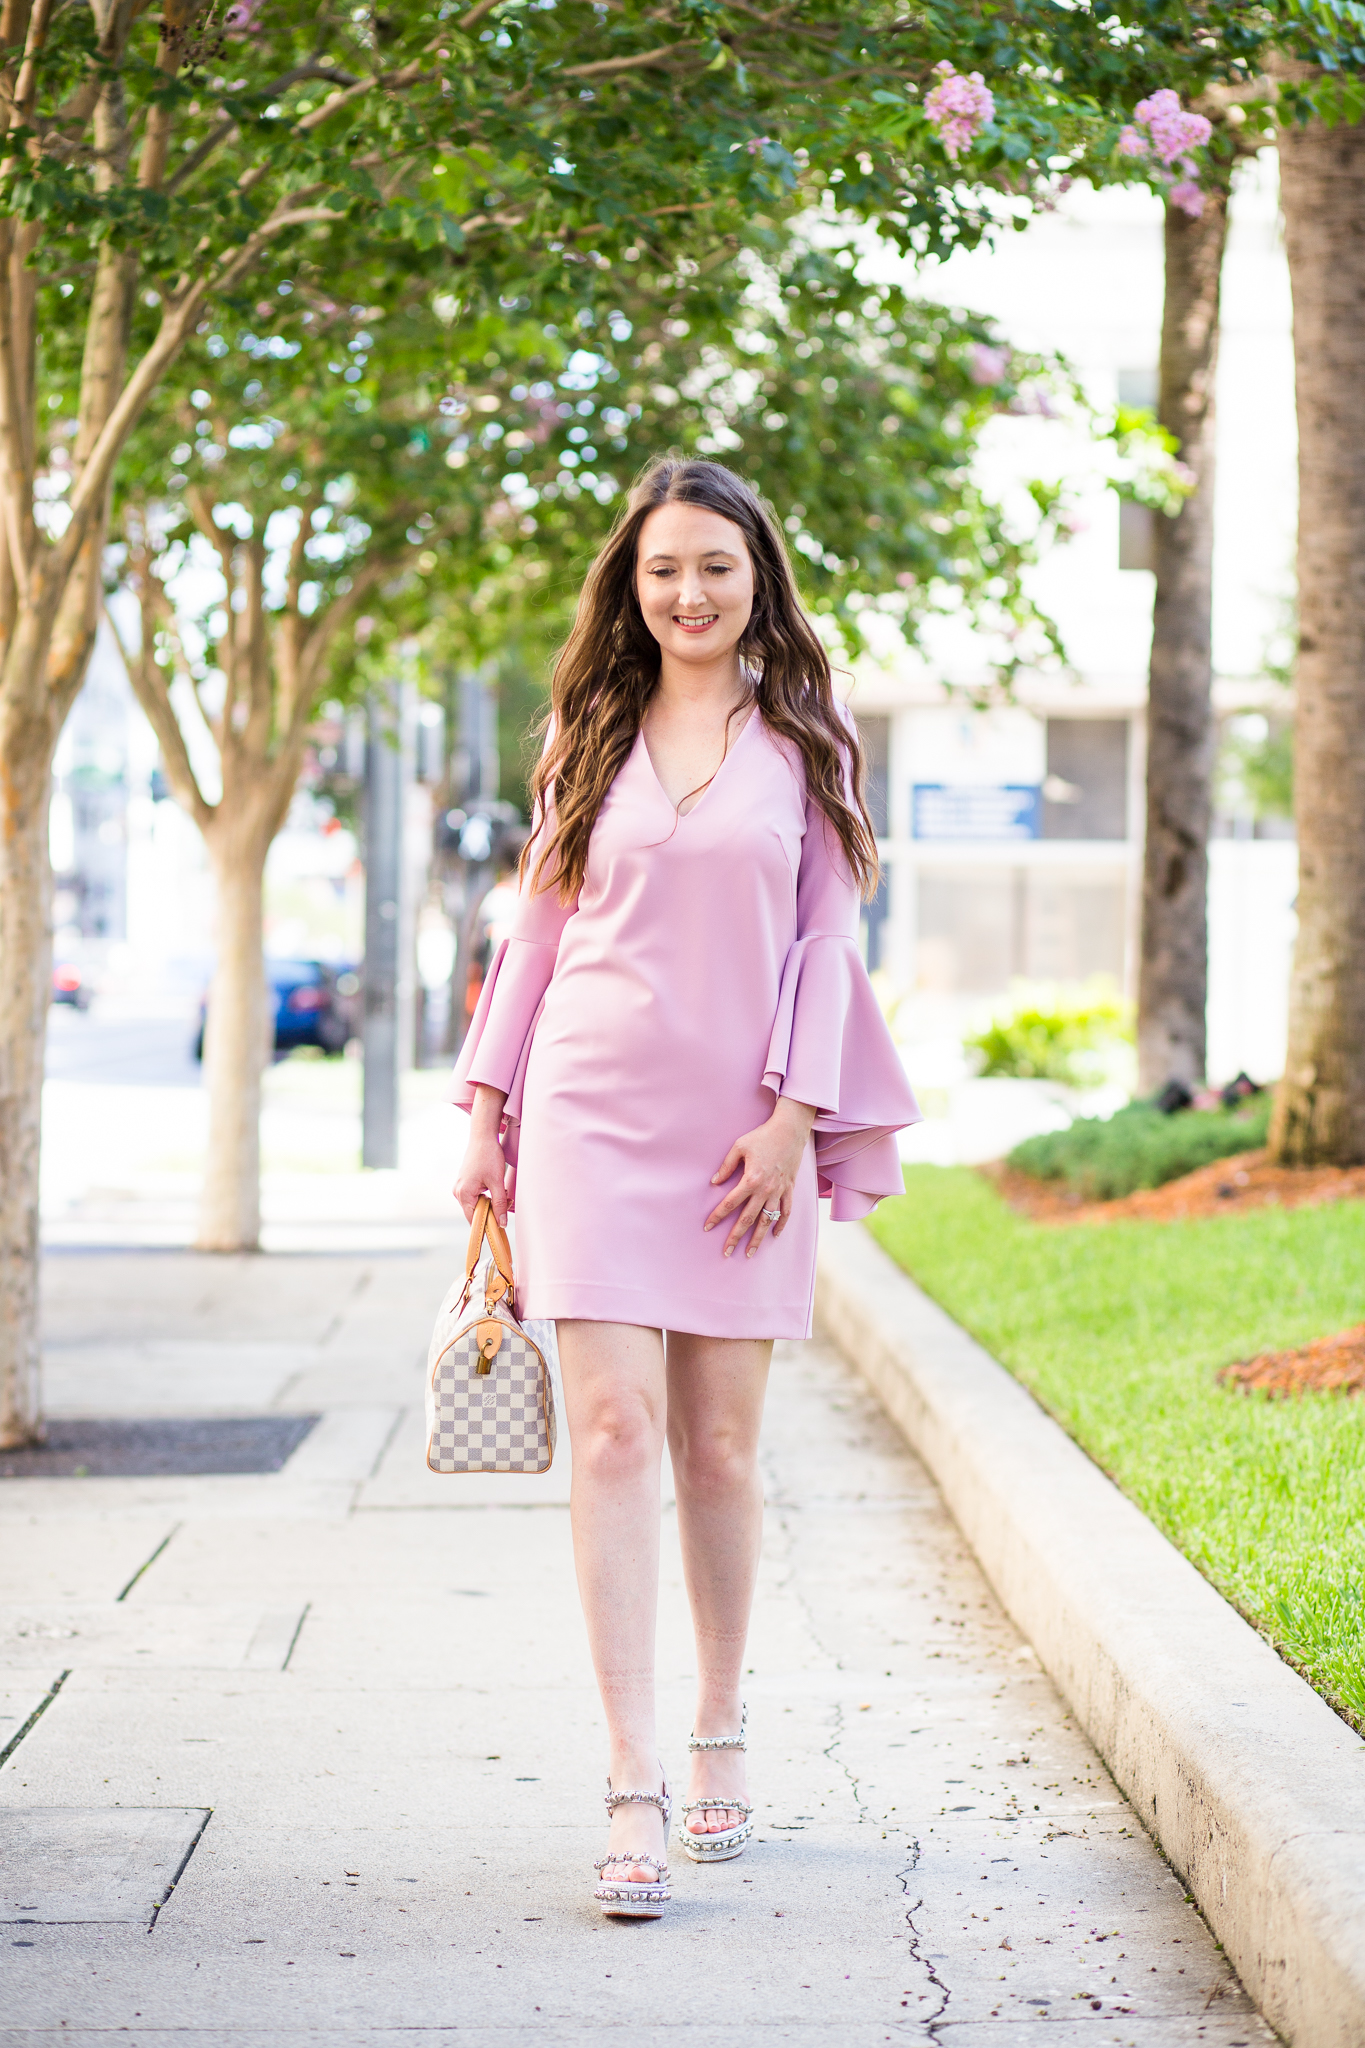 RUFFLE ME PINK WITH BELL-SLEEVES AND STUDS, Milly dress, milly nicole bell sleeve dress, christian louboutin wedges, christian louboutin cataclou, summer dress, pink dress, pink bell sleeve dress, silver wedges, louis vuitton speedy 25 azur, pink ruffle dress